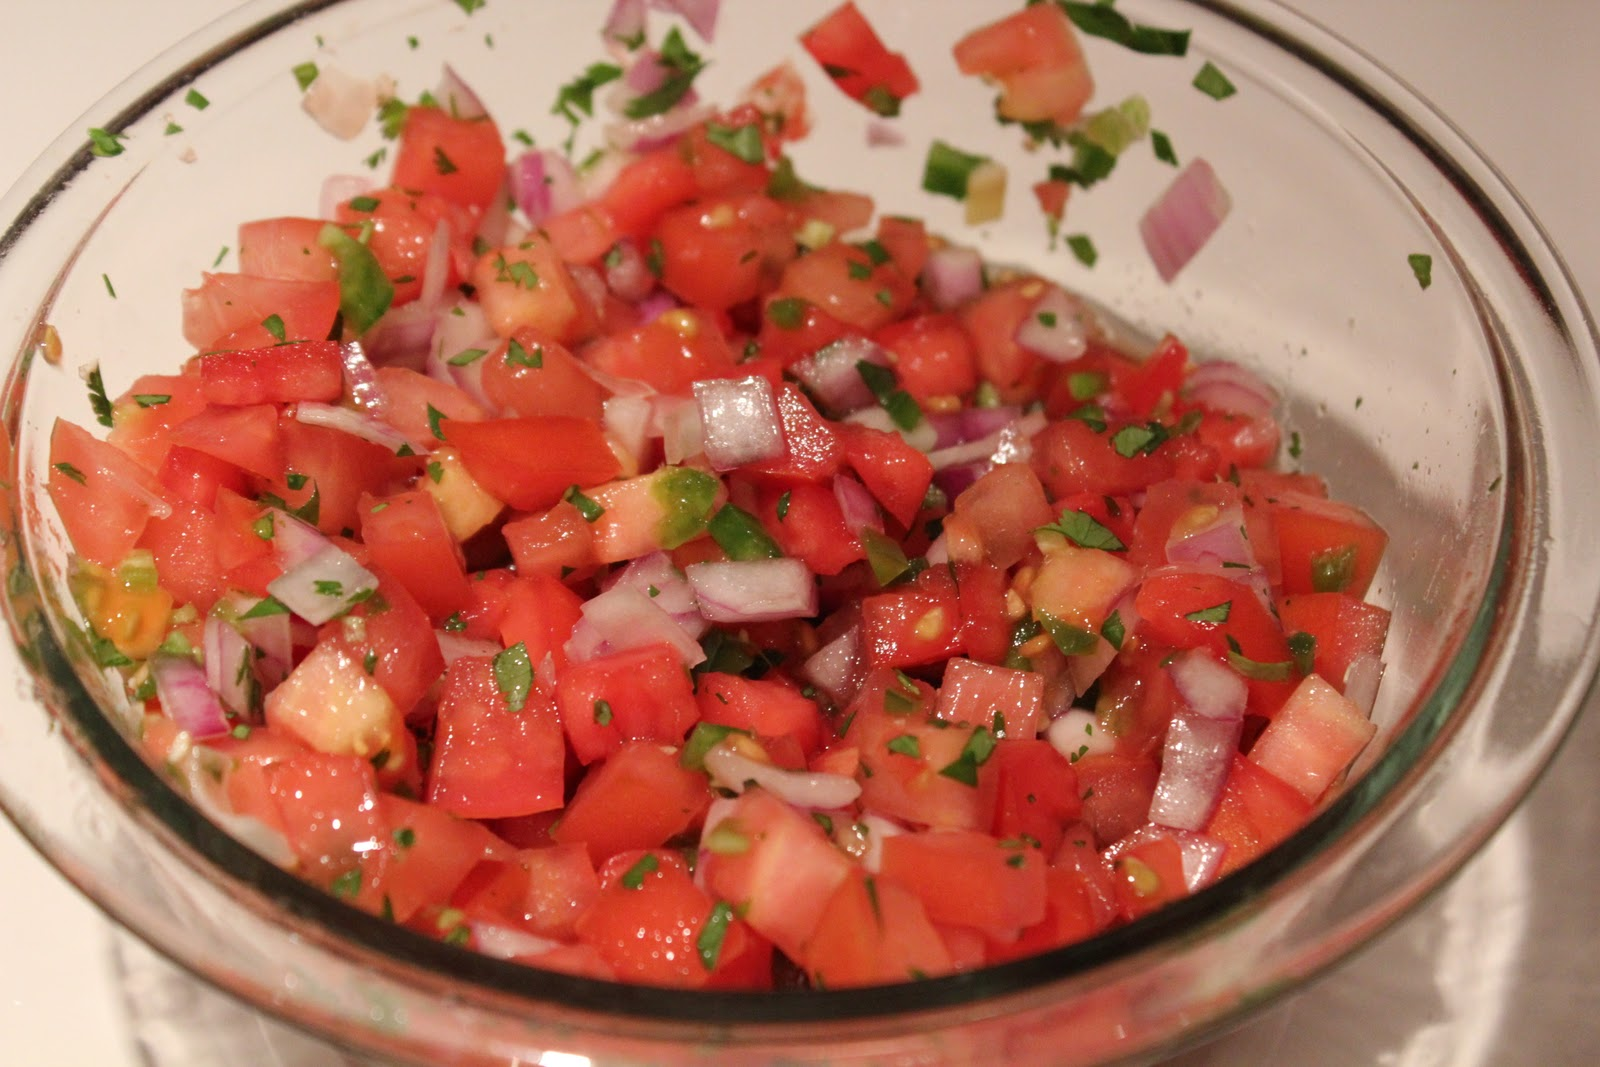 Near to Nothing: Pico de Gallo